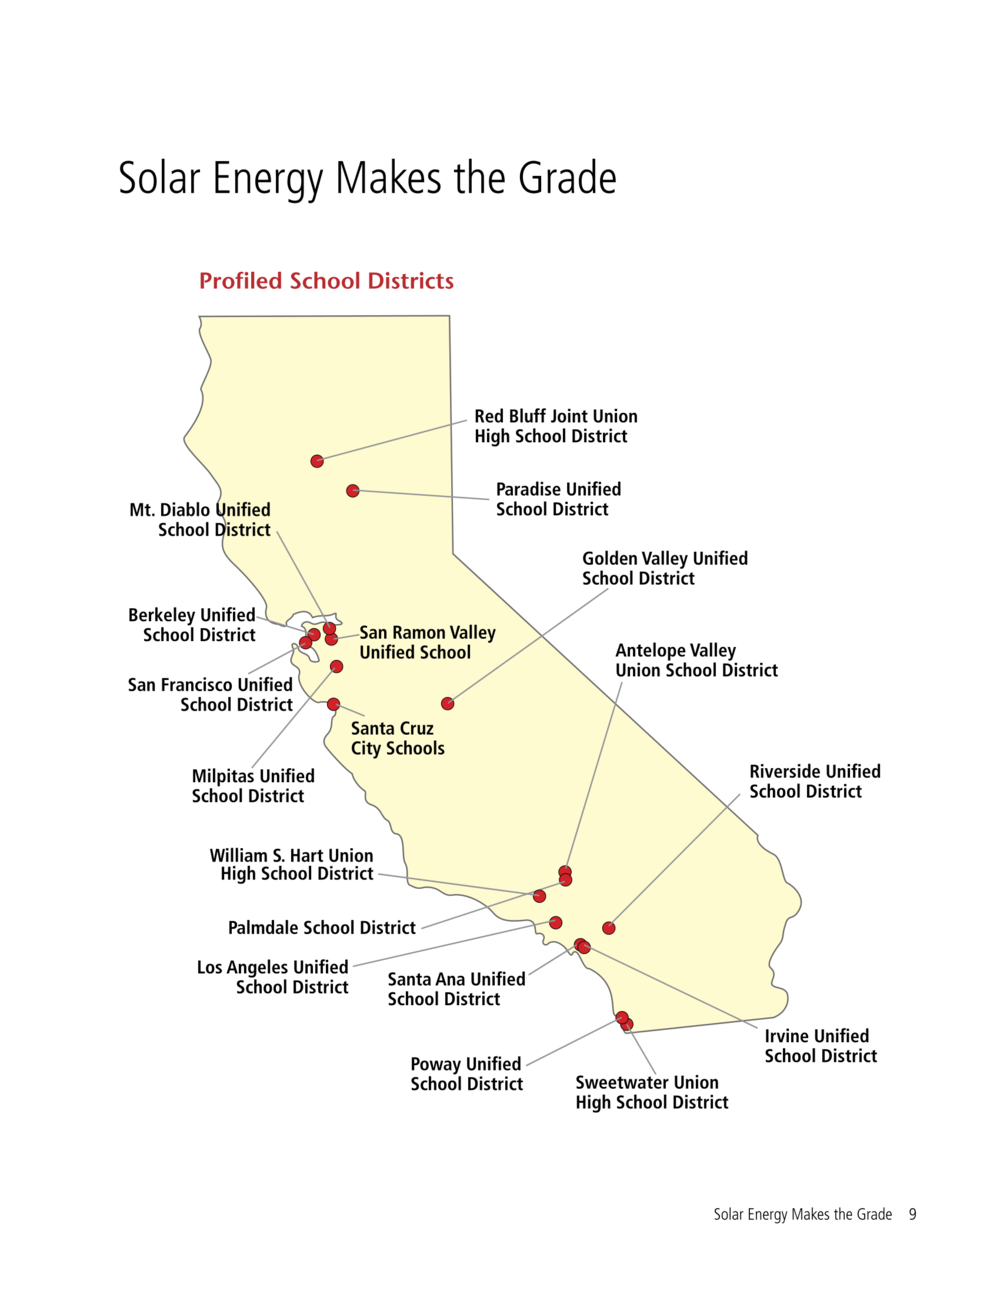 Image by Environment California Research & Policy Center (does not include all districts w/ solar)